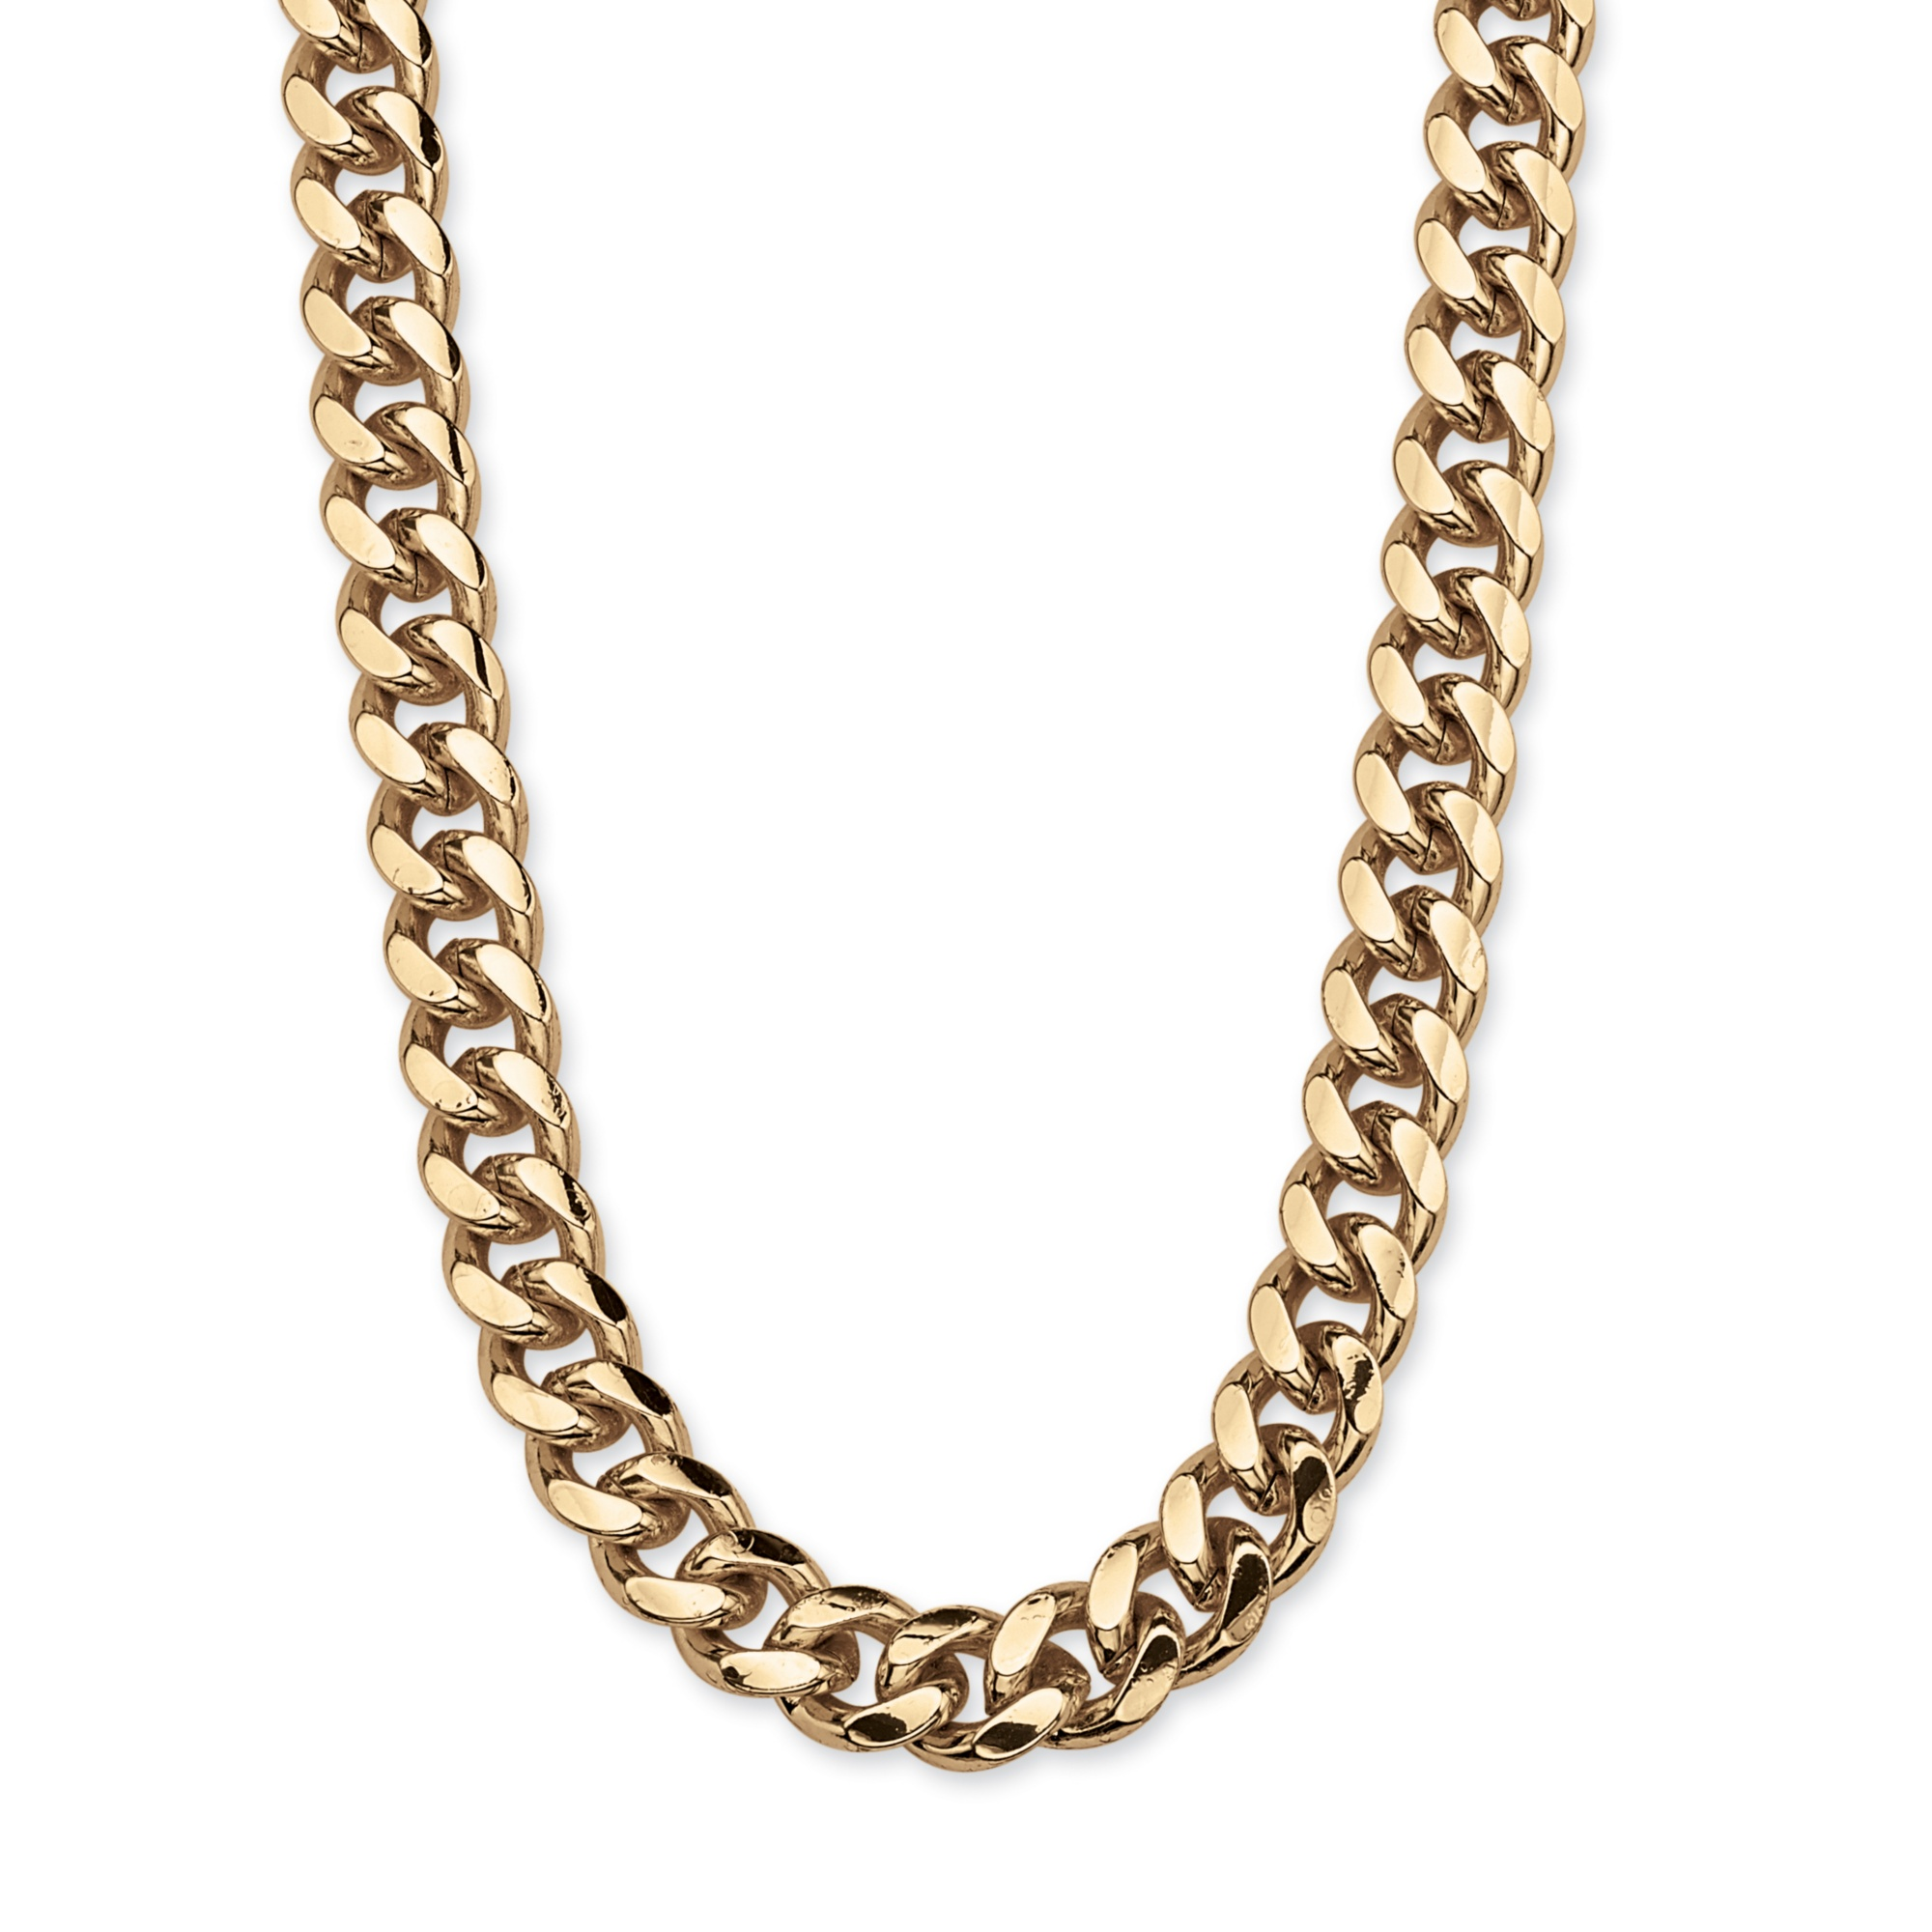 Men's Curb-Link Chain in Yellow Gold Tone 30""